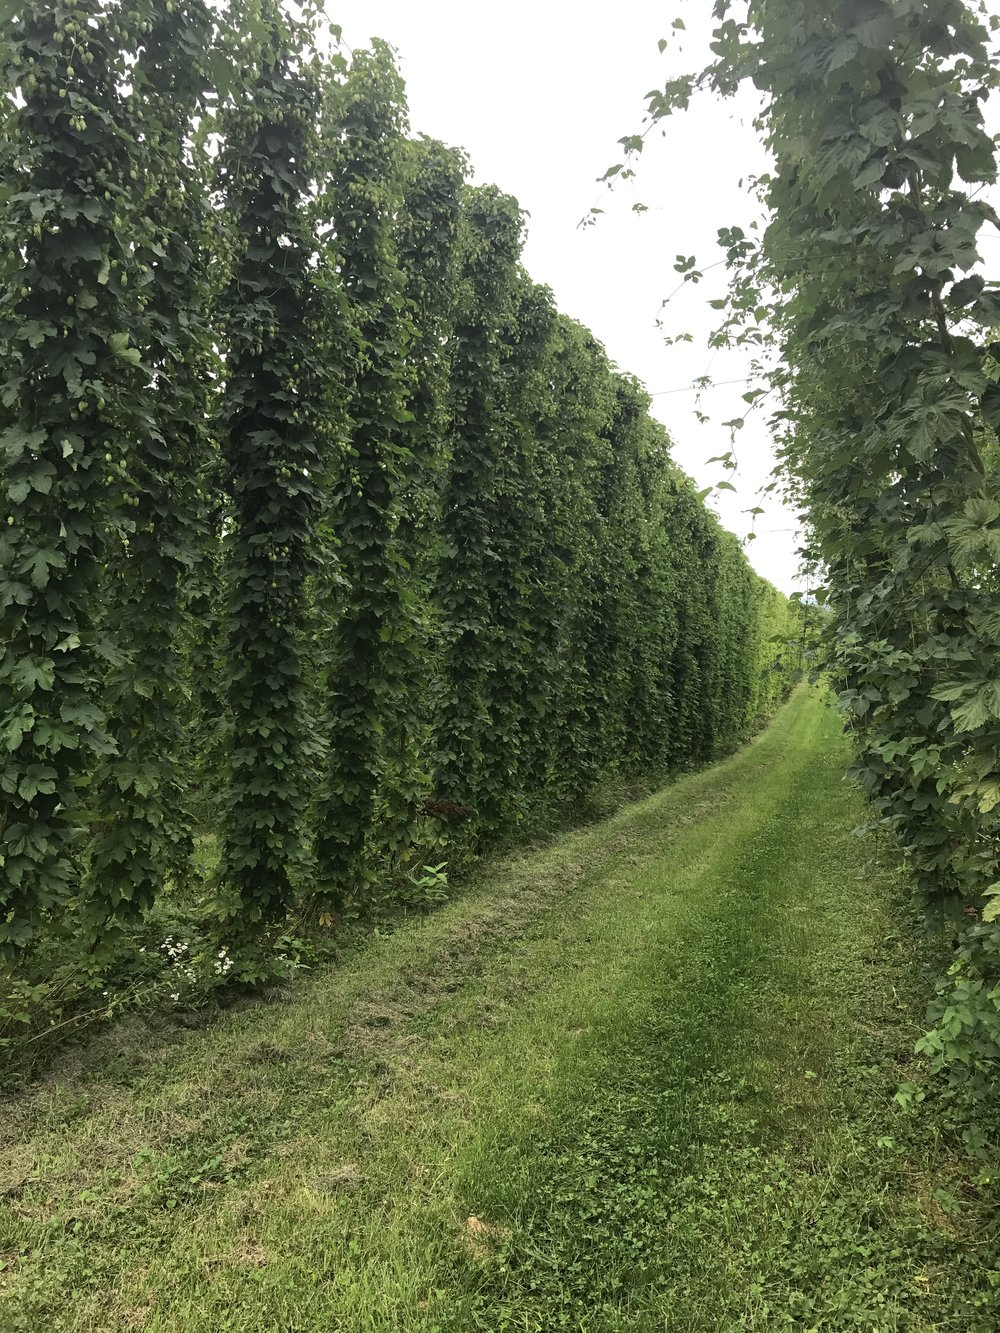 August 2017 ~ Harvesting the hops is a few shorts weeks away!